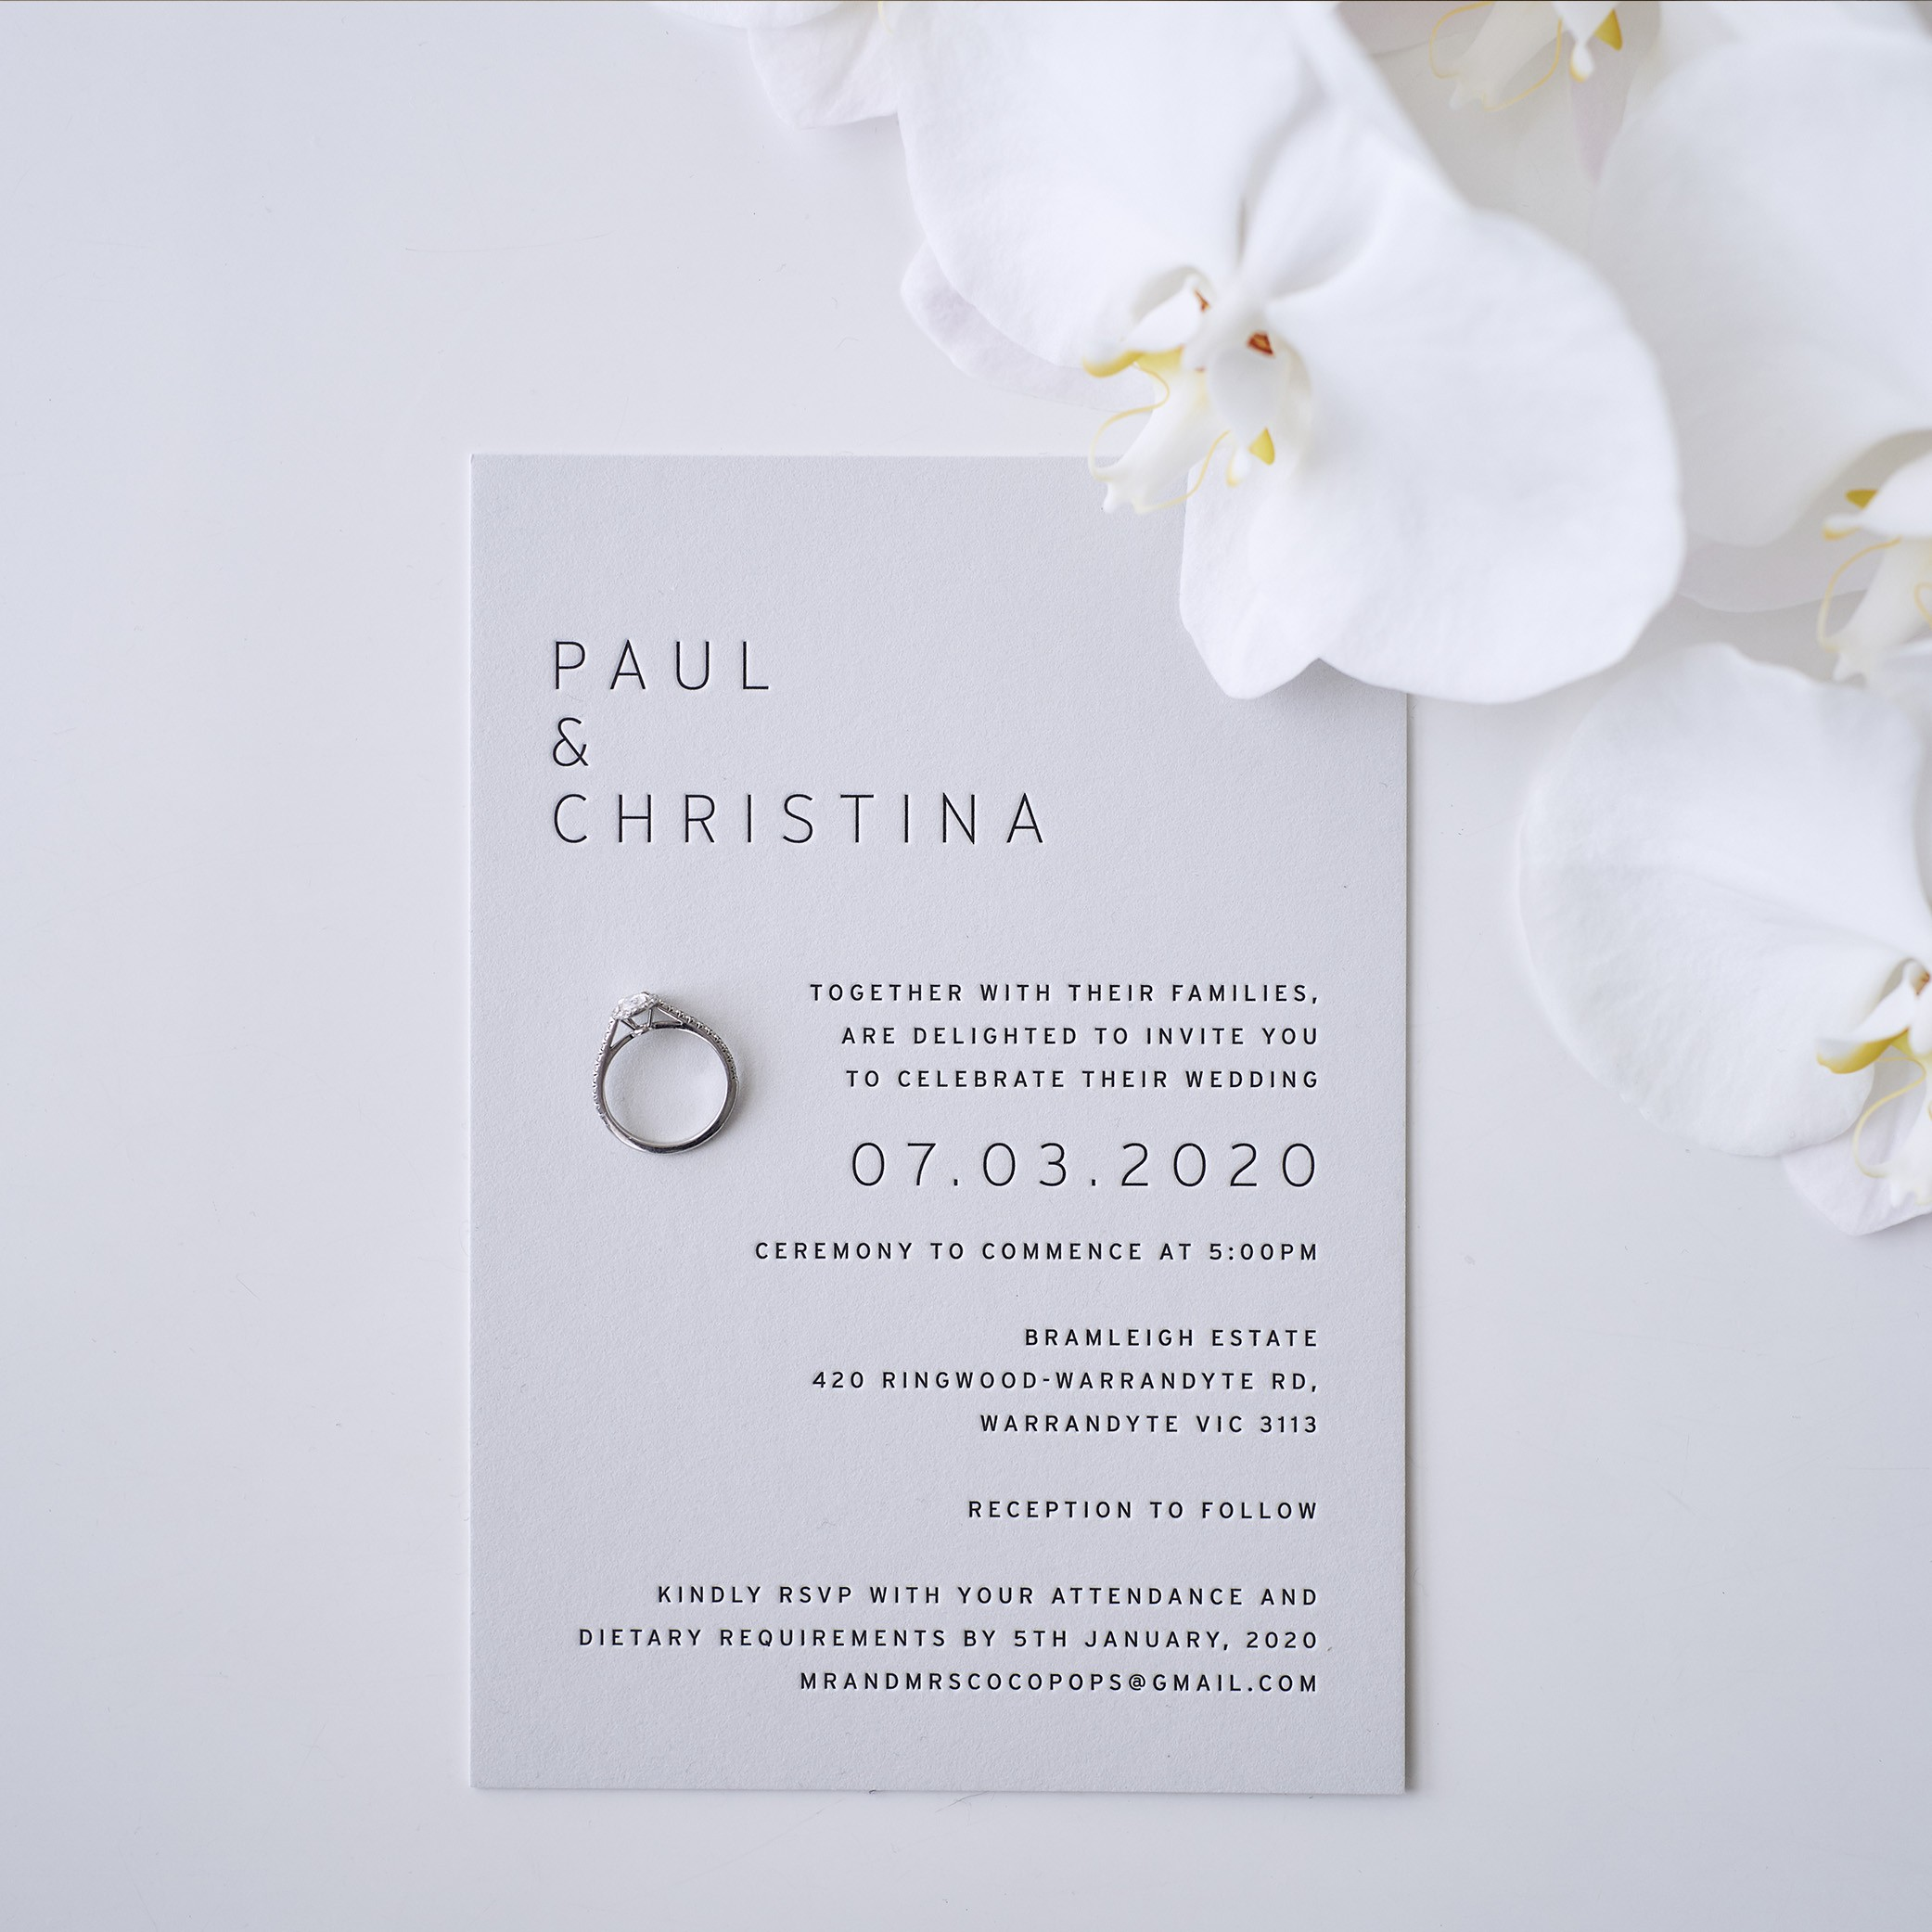 Wedding Invitations - MAIN INVITATION | Paul + Christina